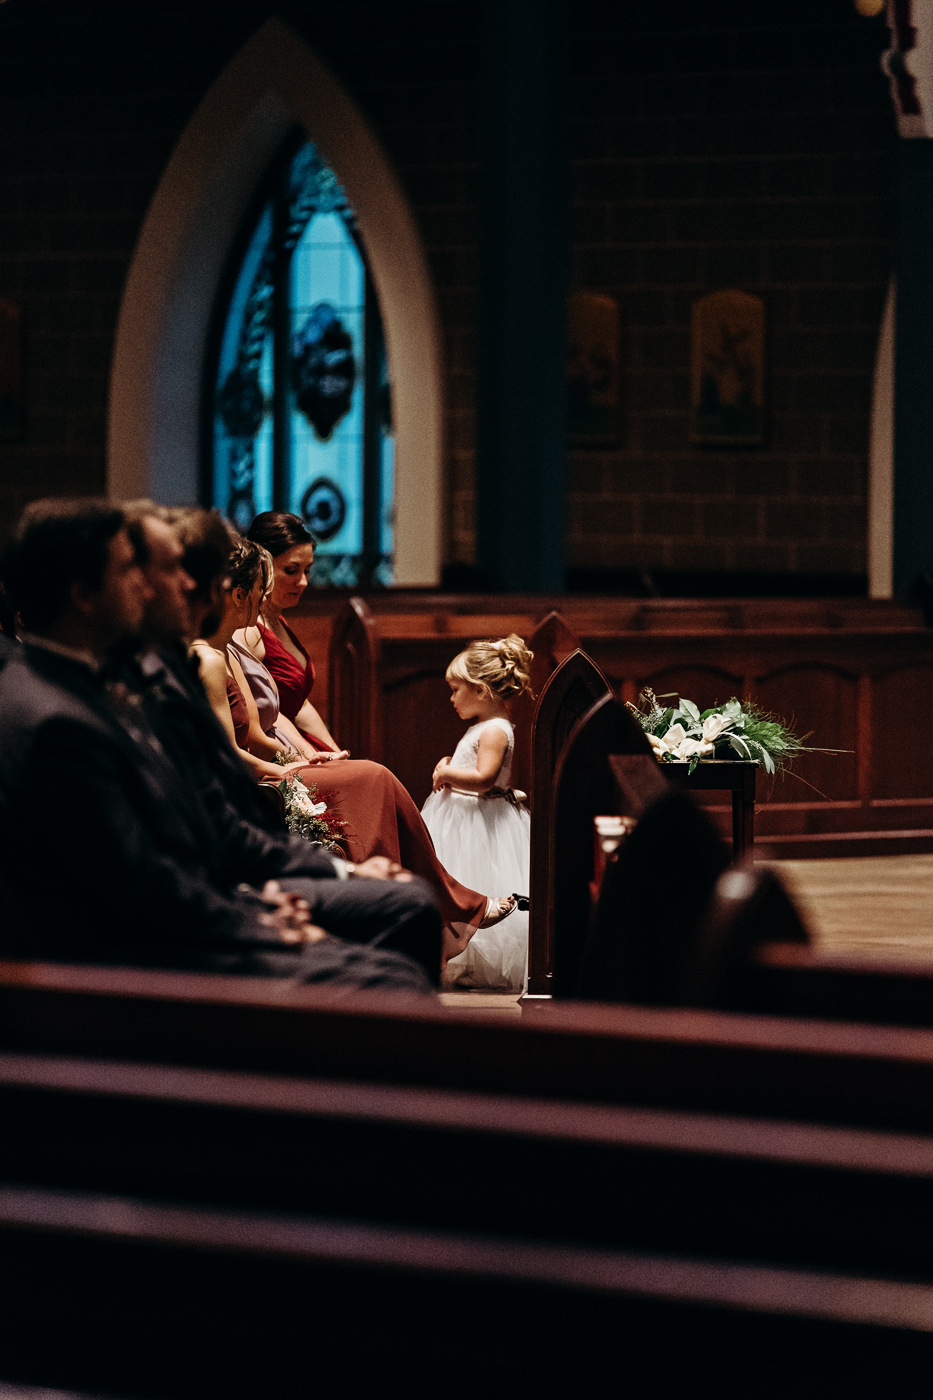 Flower girl standing in the pew during the wedding ceremony